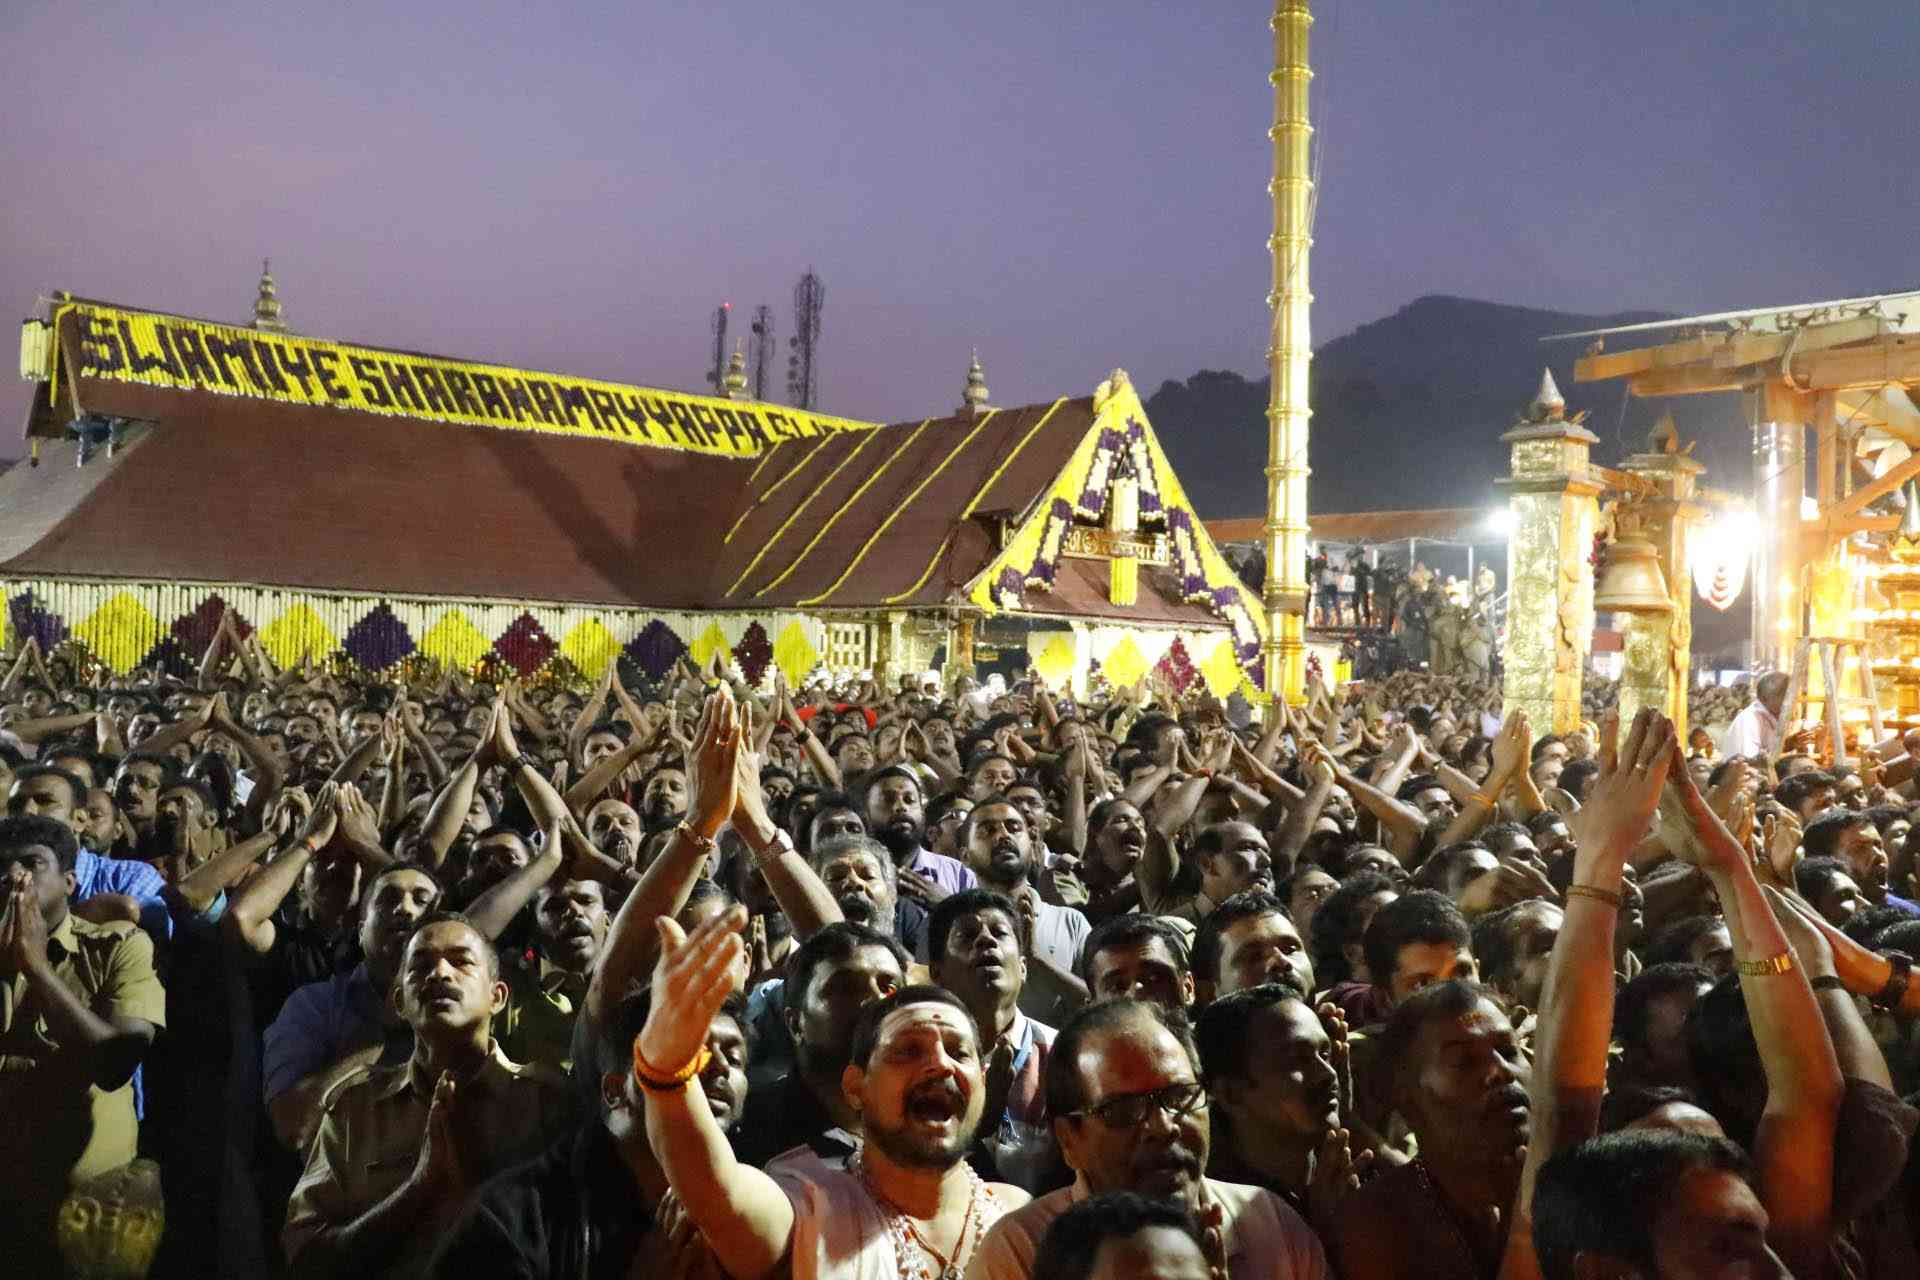 Devotees at the Sabarimala temple. (Photo credit: IANS)